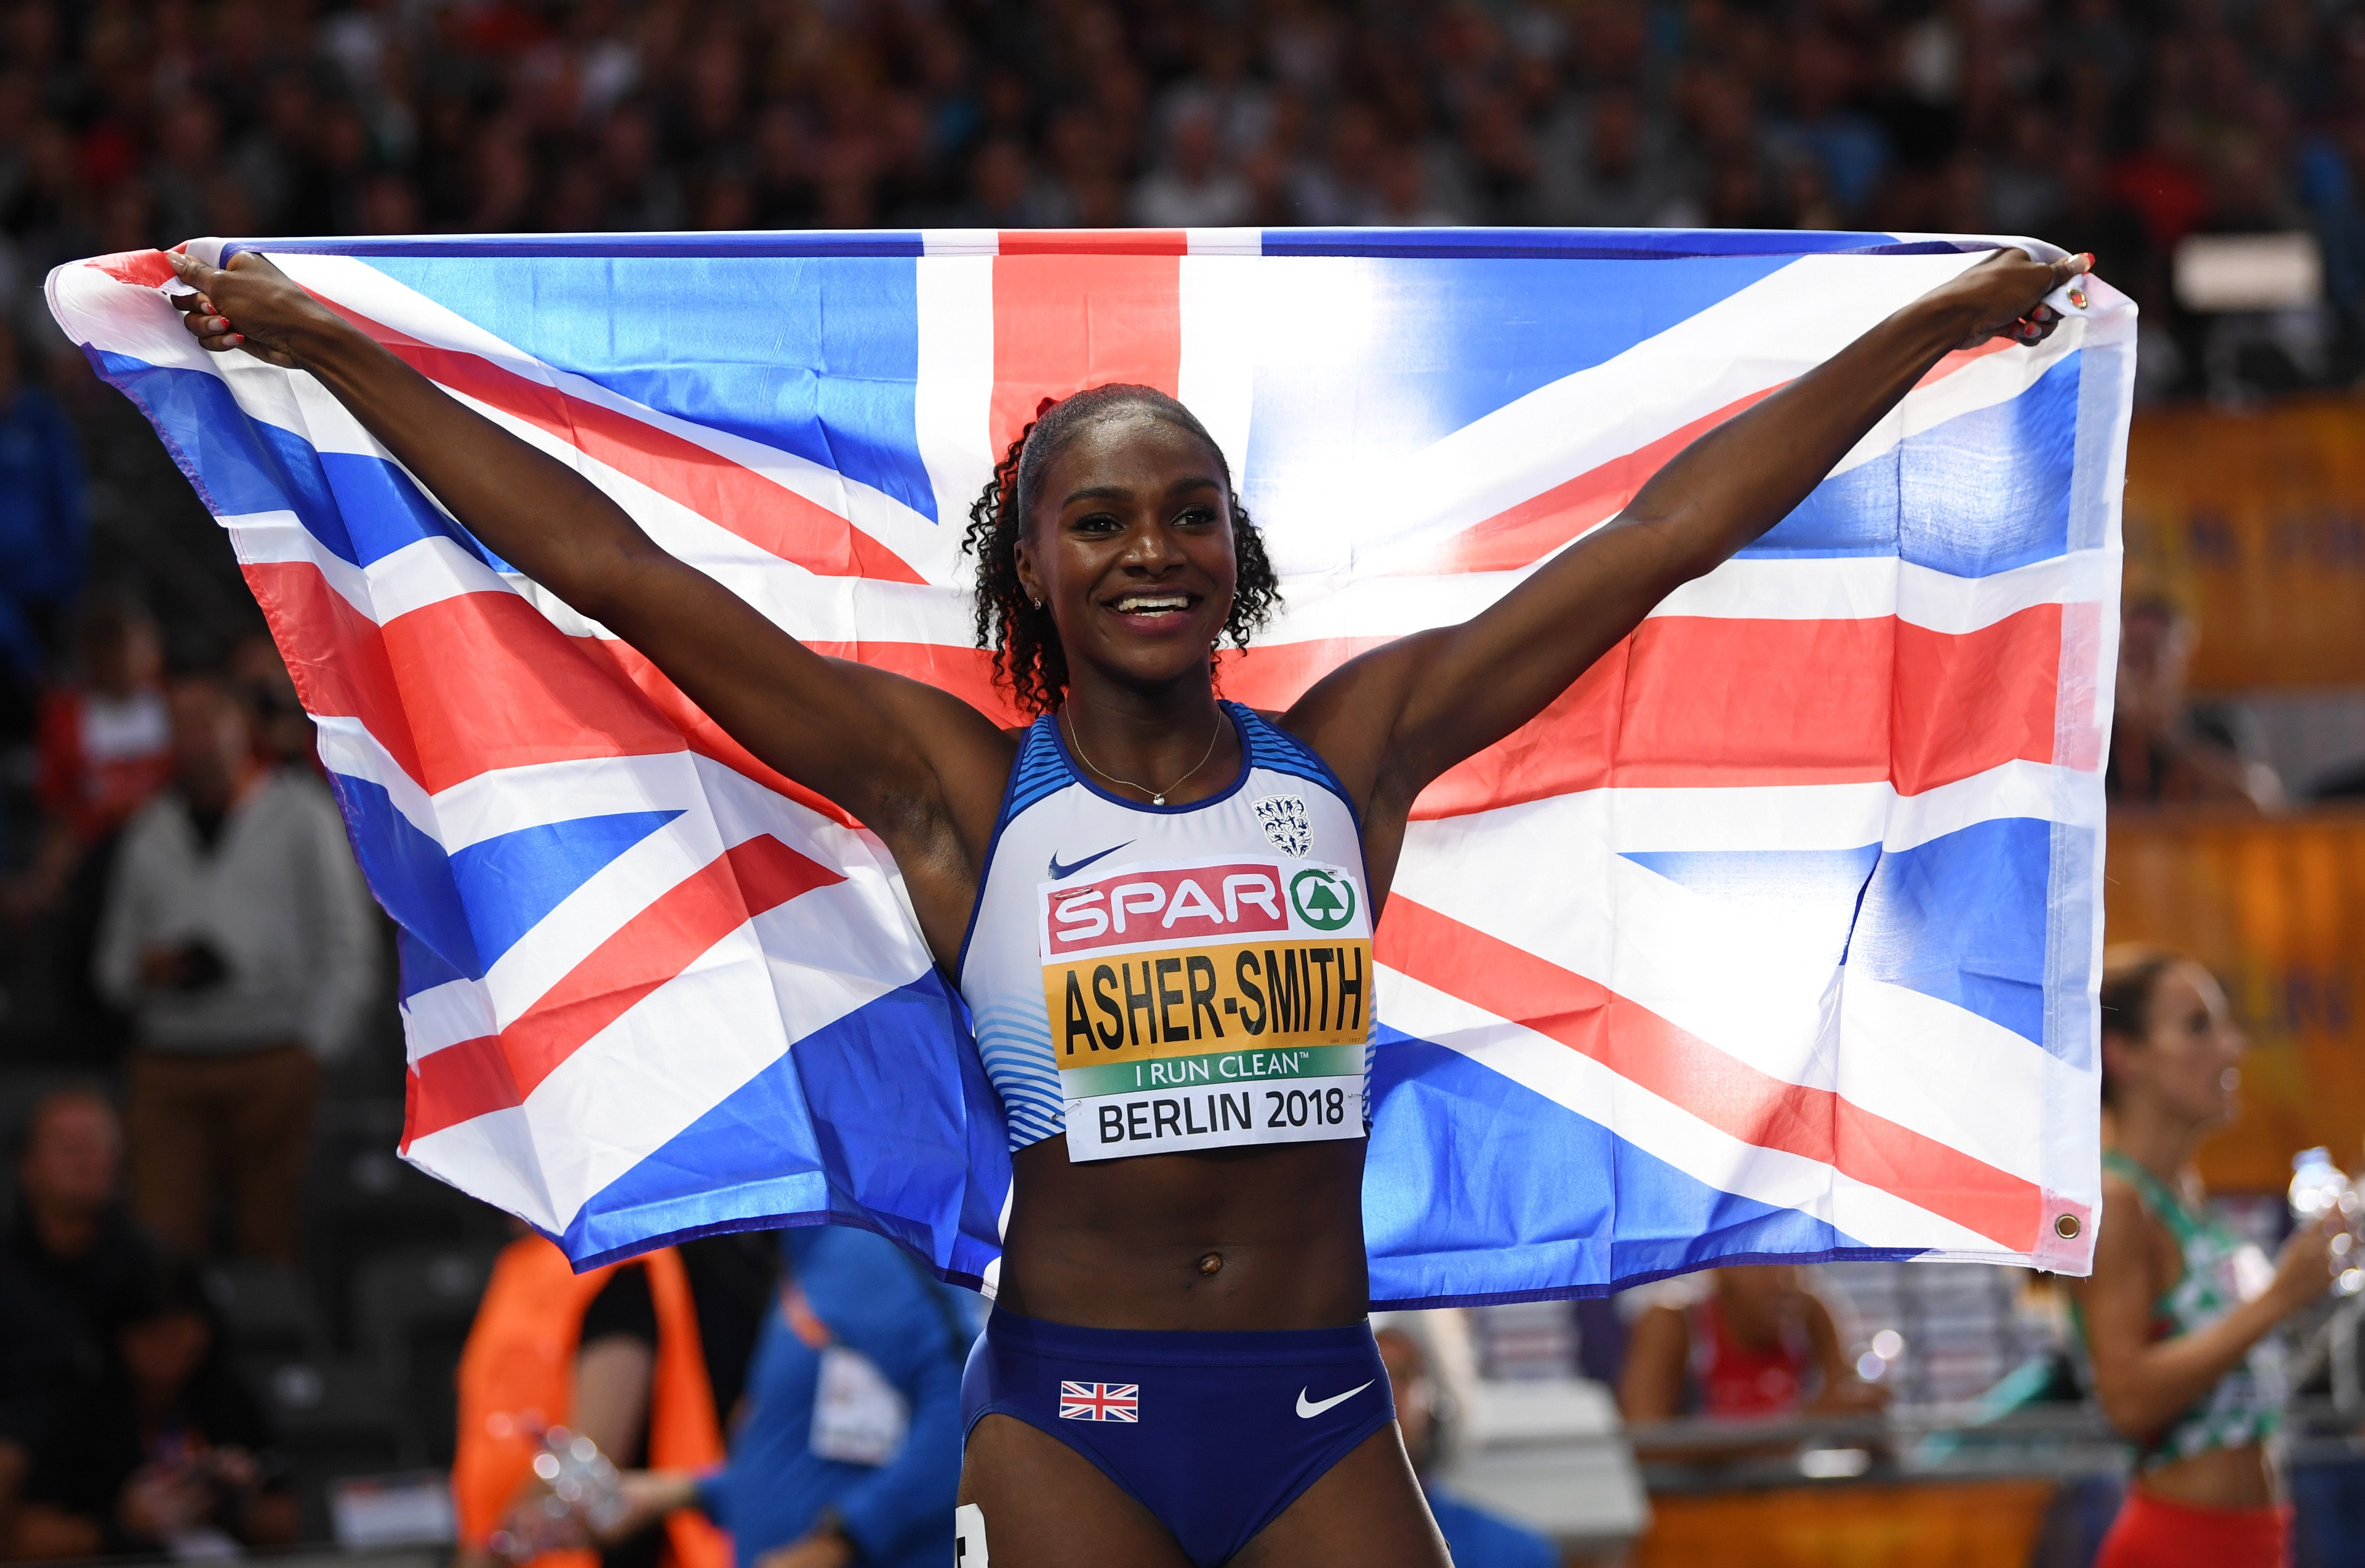 Dina Asher-Smith of Great Britain celebrates winning gold in the Women's 200 metres final during day five of the 24th European Athletics Championships at Olympiastadion on August 11, 2018 in Berlin, Germany.